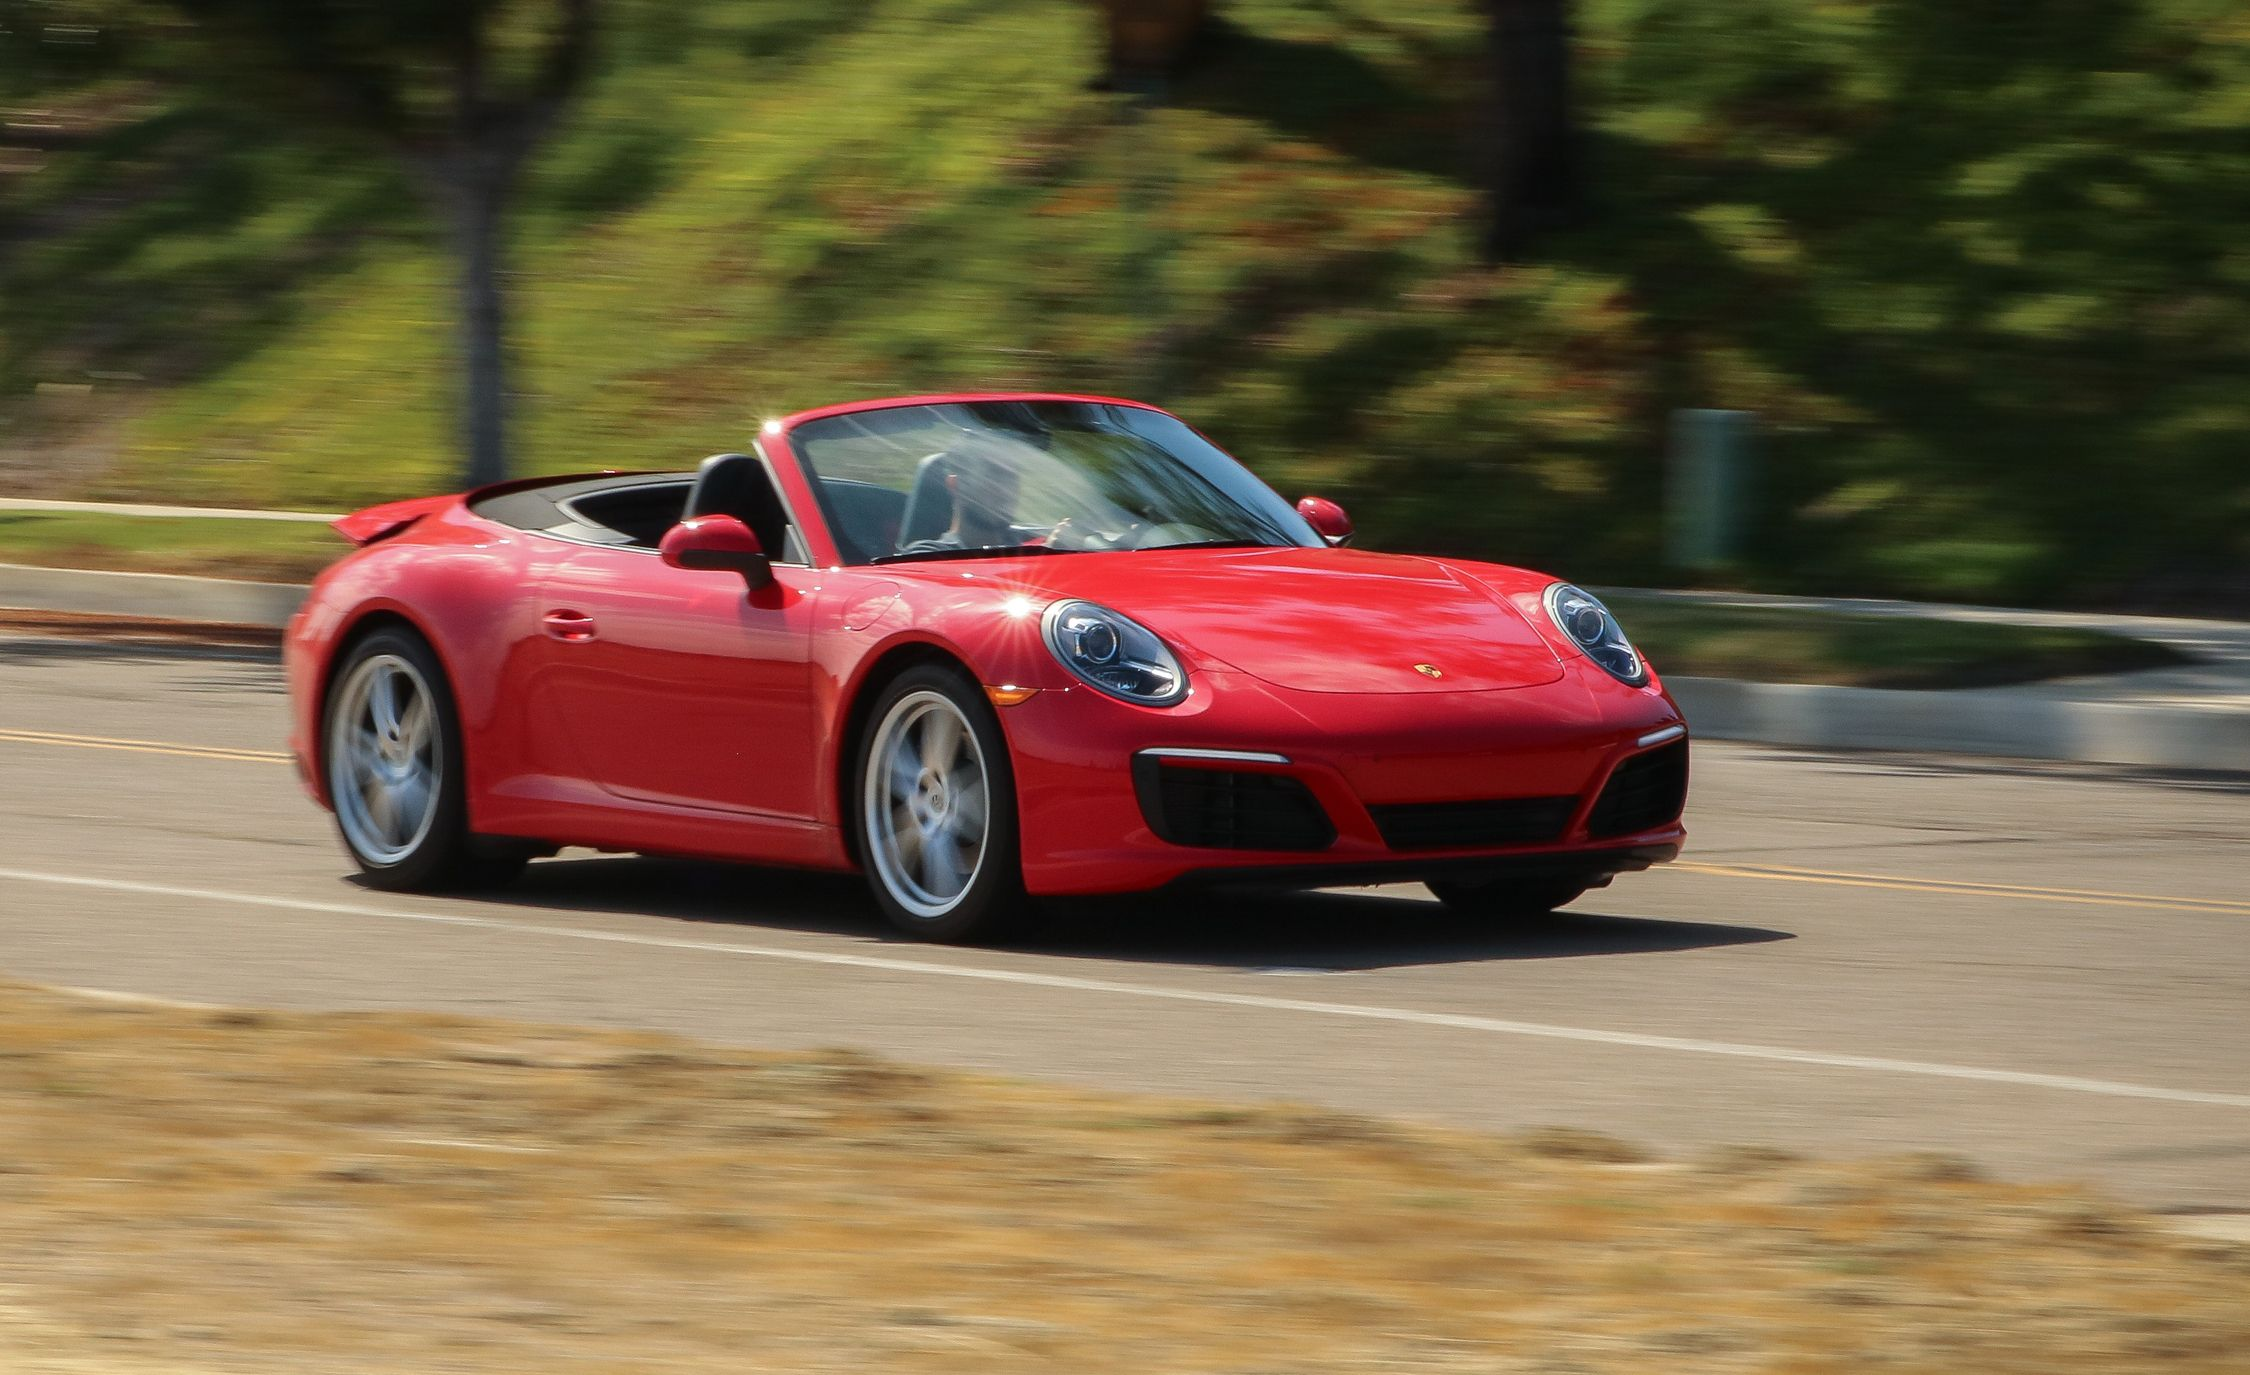 2018 Porsche 911 Cabriolet Pdk Automatic Test Merely A But Still Review Car And Driver